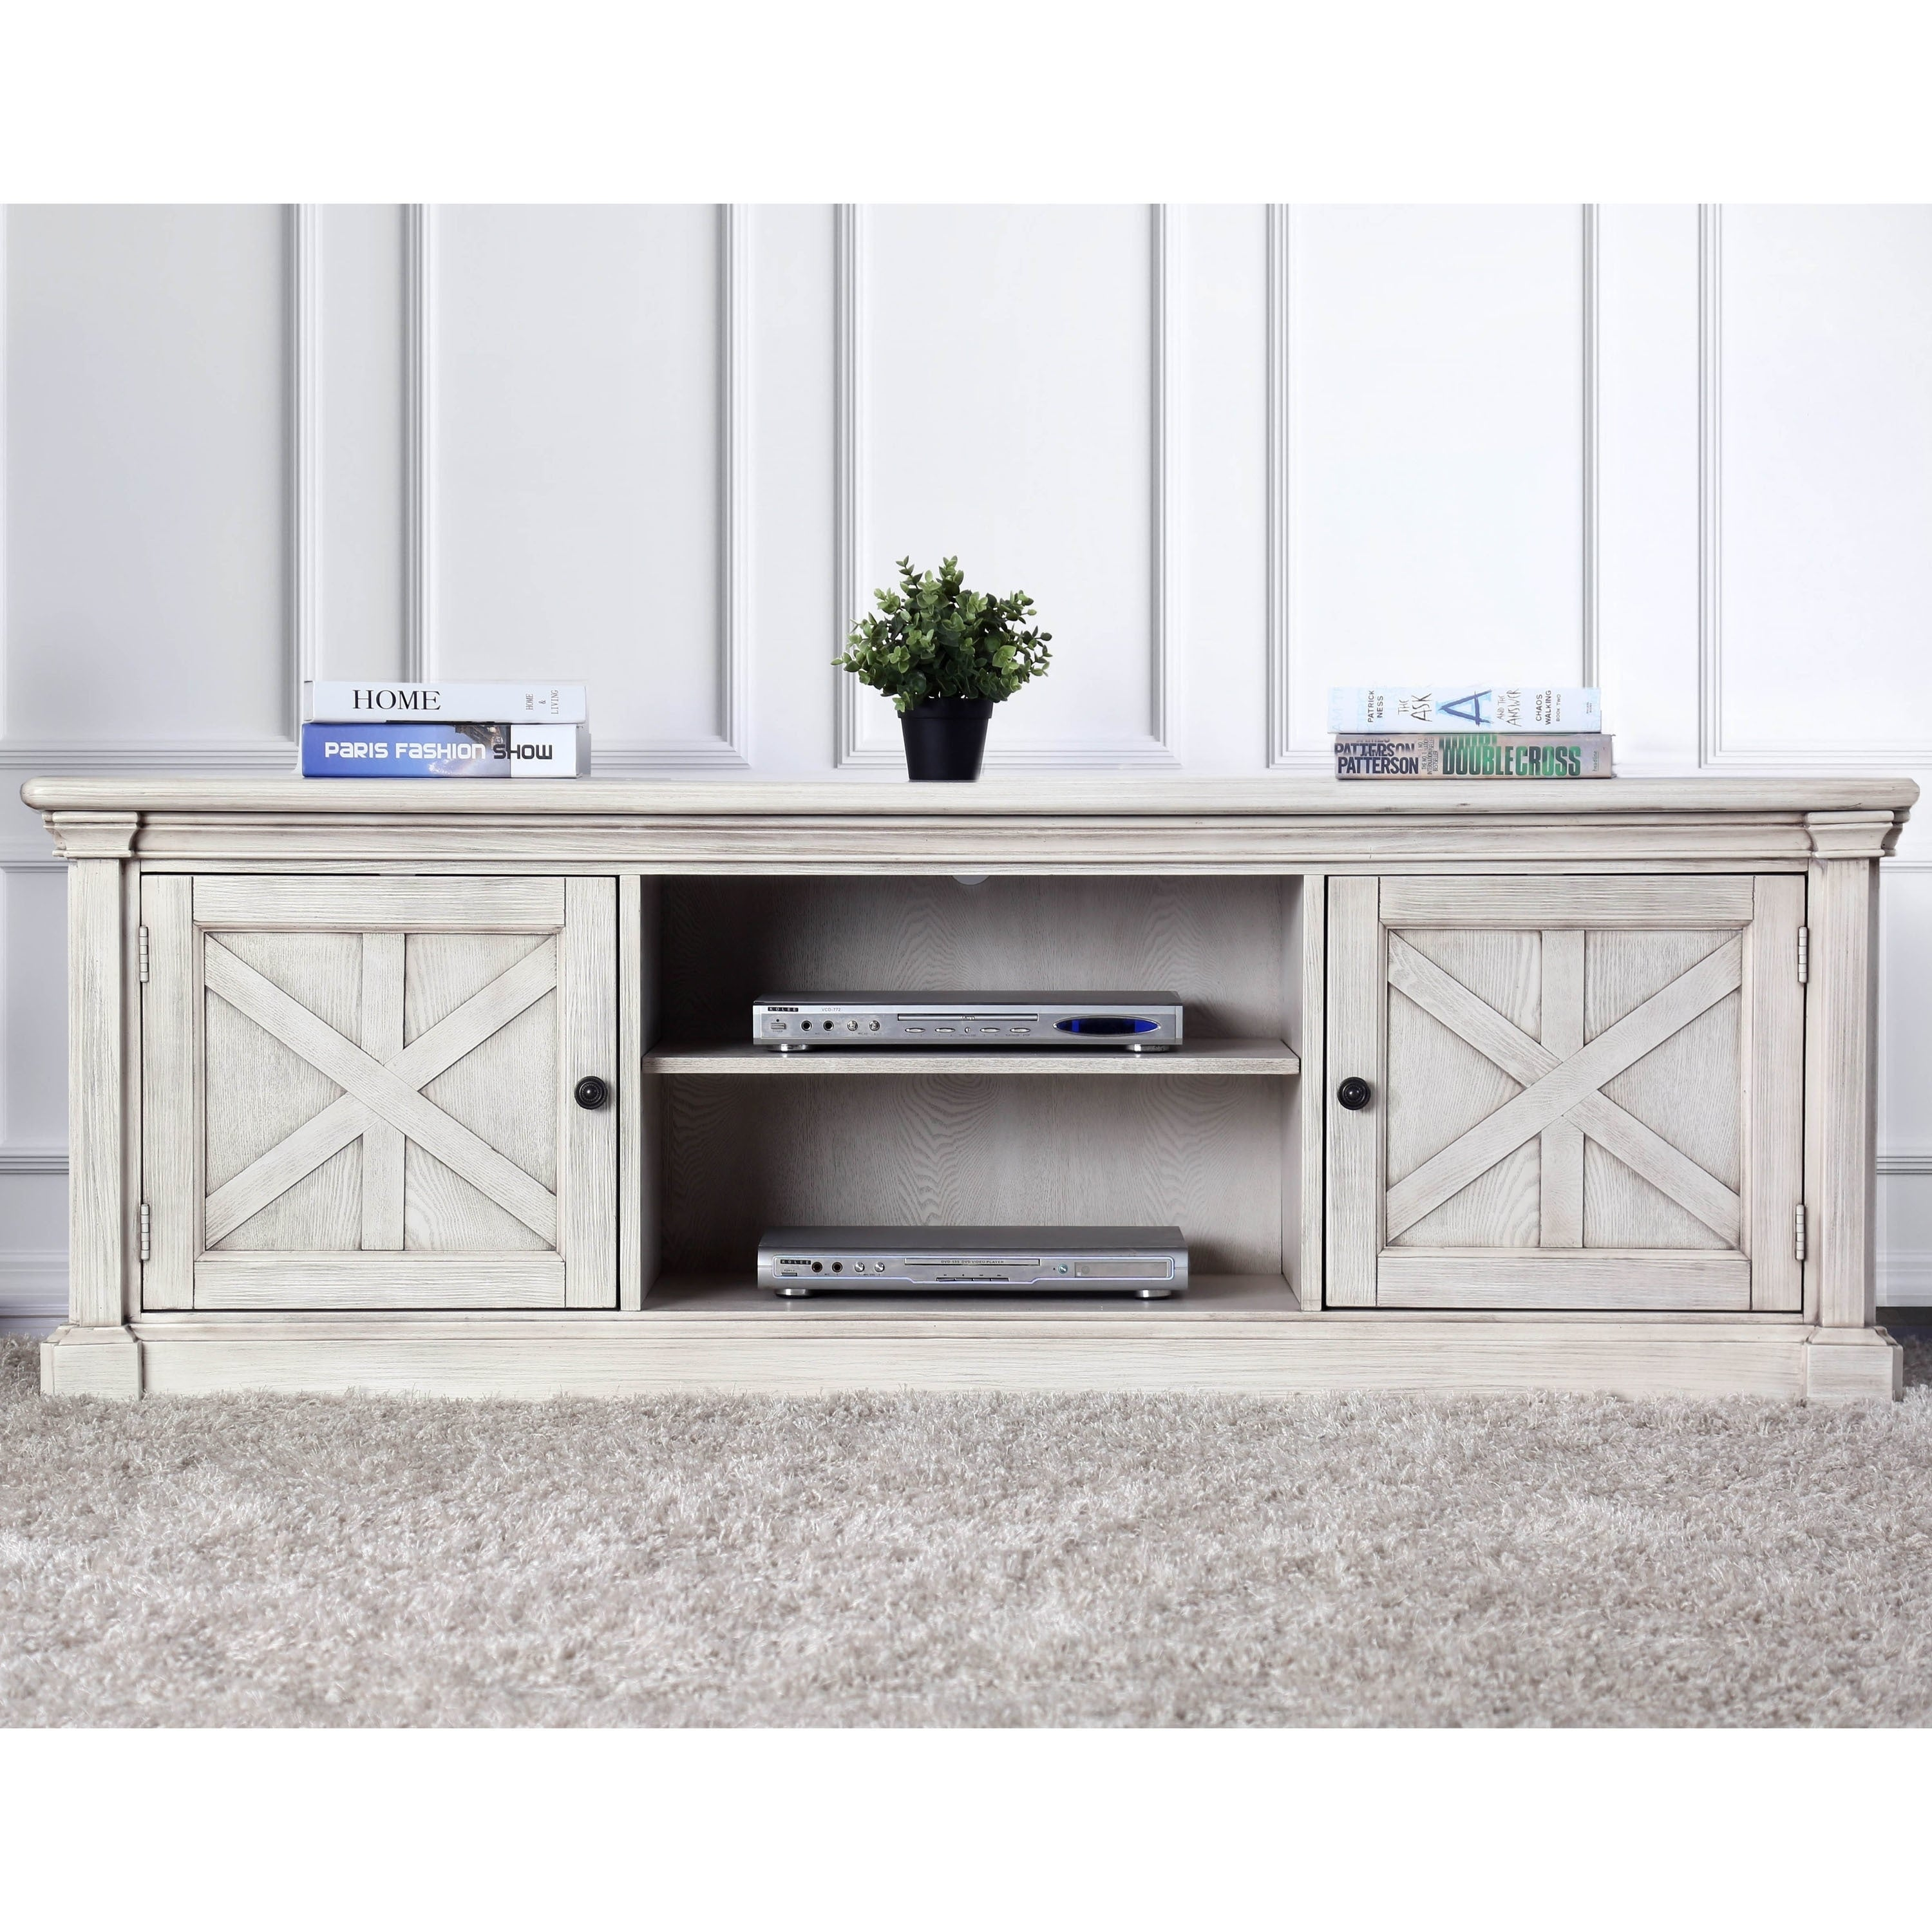 Furniture Of America Lyle Rustic White Solid Wood 2 Cabinet Tv Stand